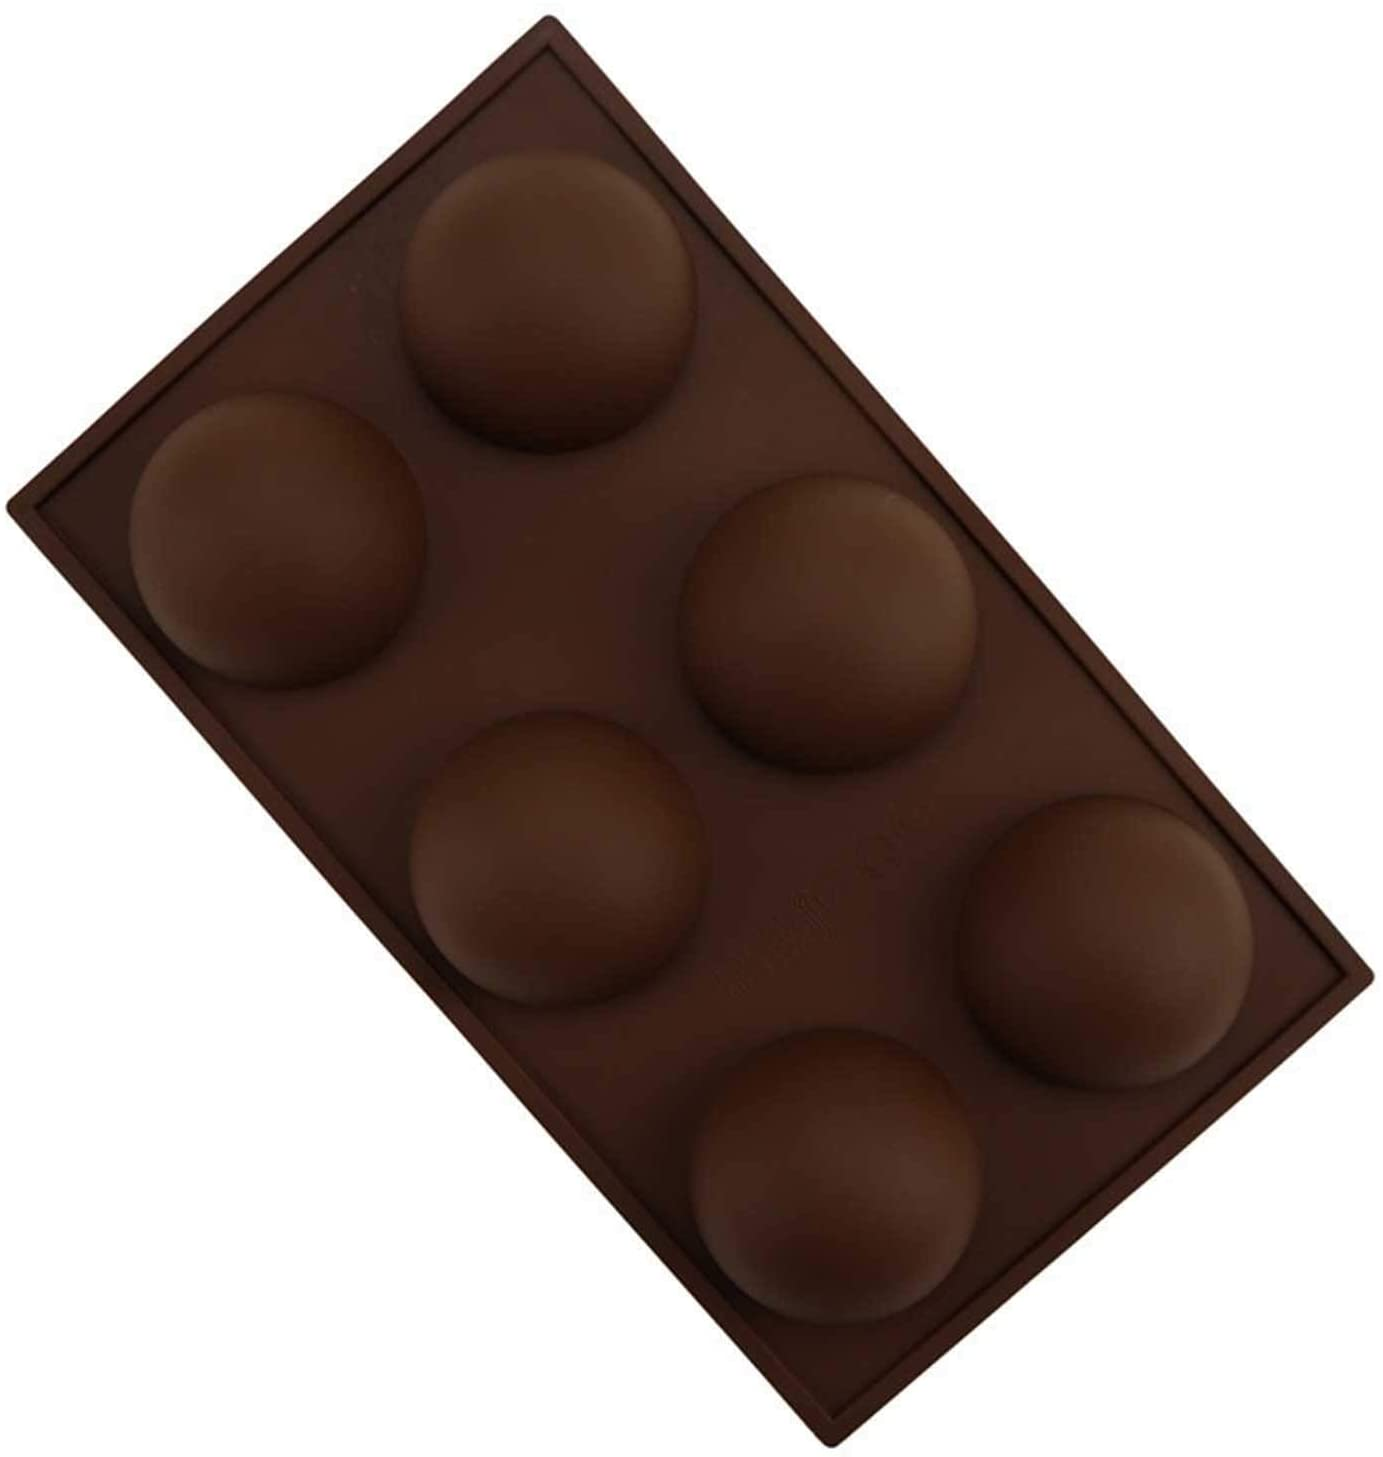 Half Ball Sphere Silicone Cake Mold Muffin Chocolate Cookie Baking Mould Pan Chocolate Mold Cake Mold